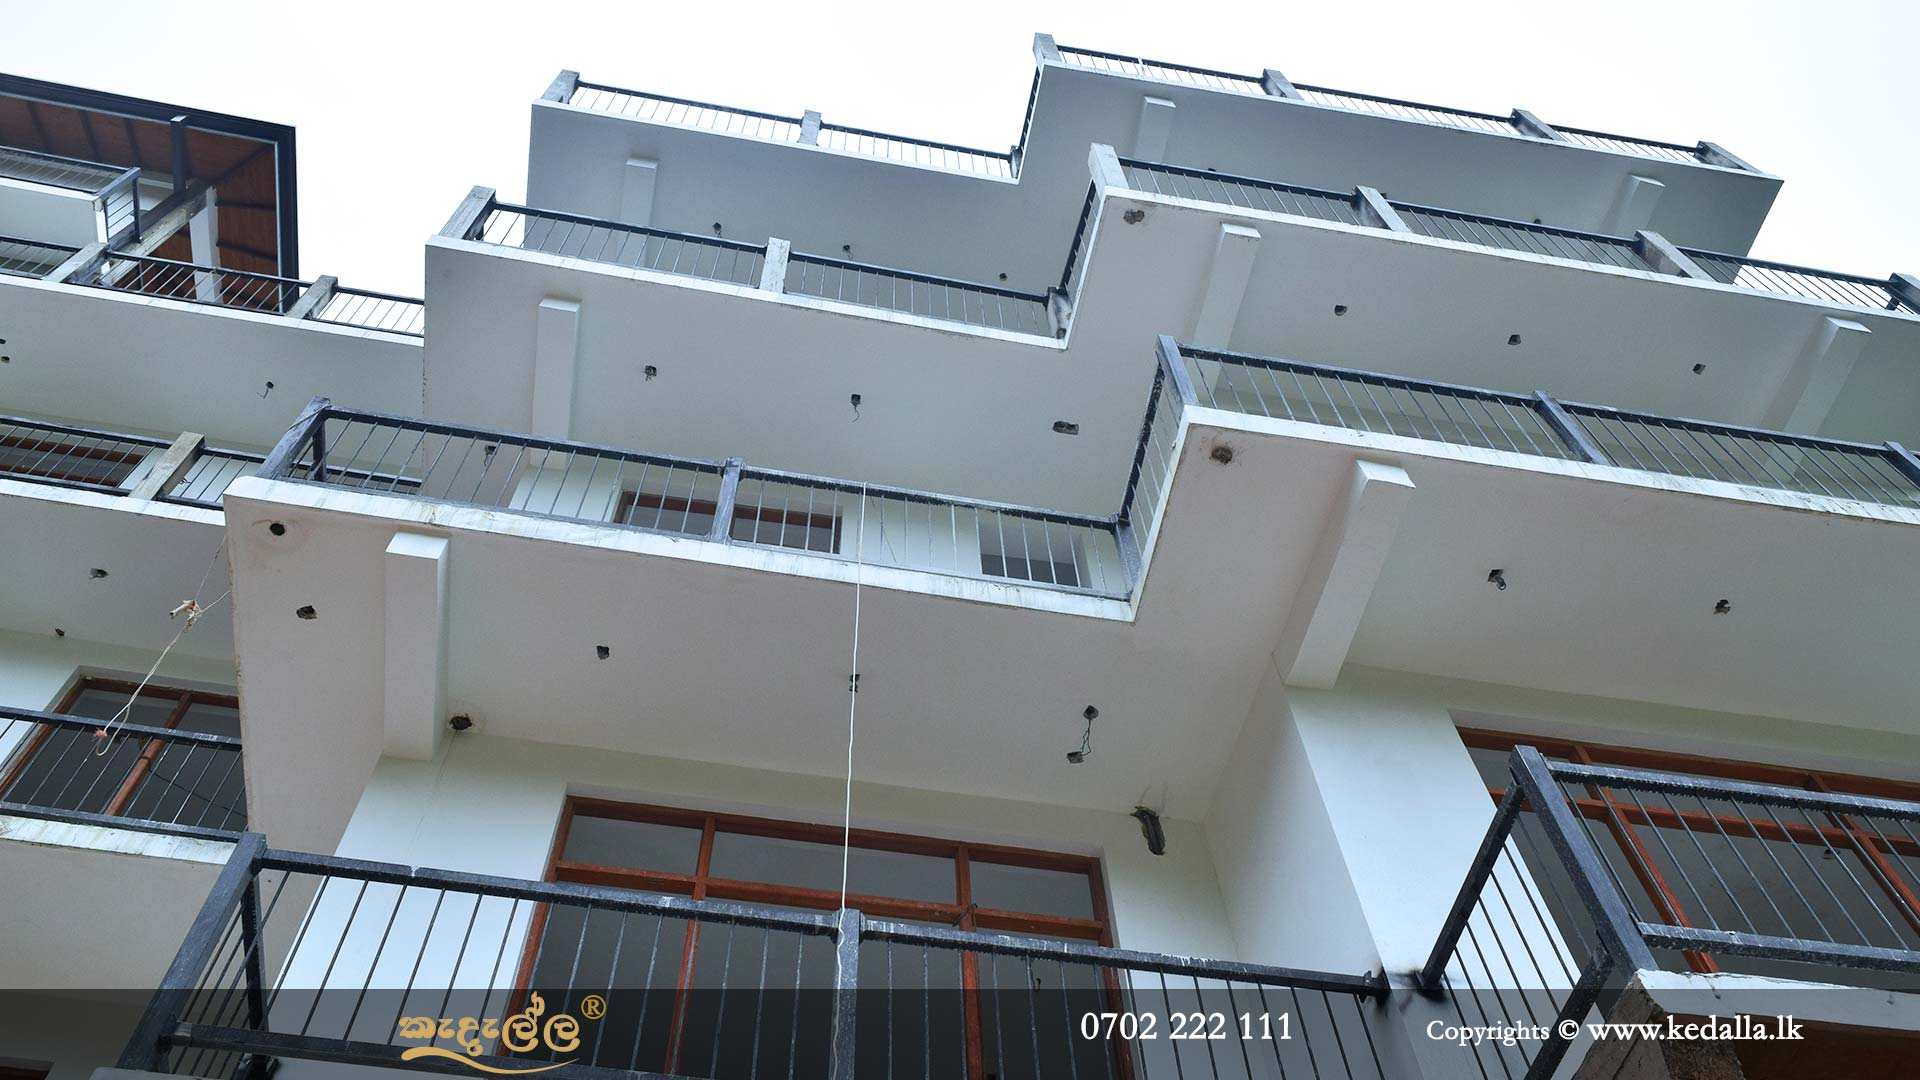 Luxury multy story box model house construction by Modern House Builders in Kandy Sri Lanka